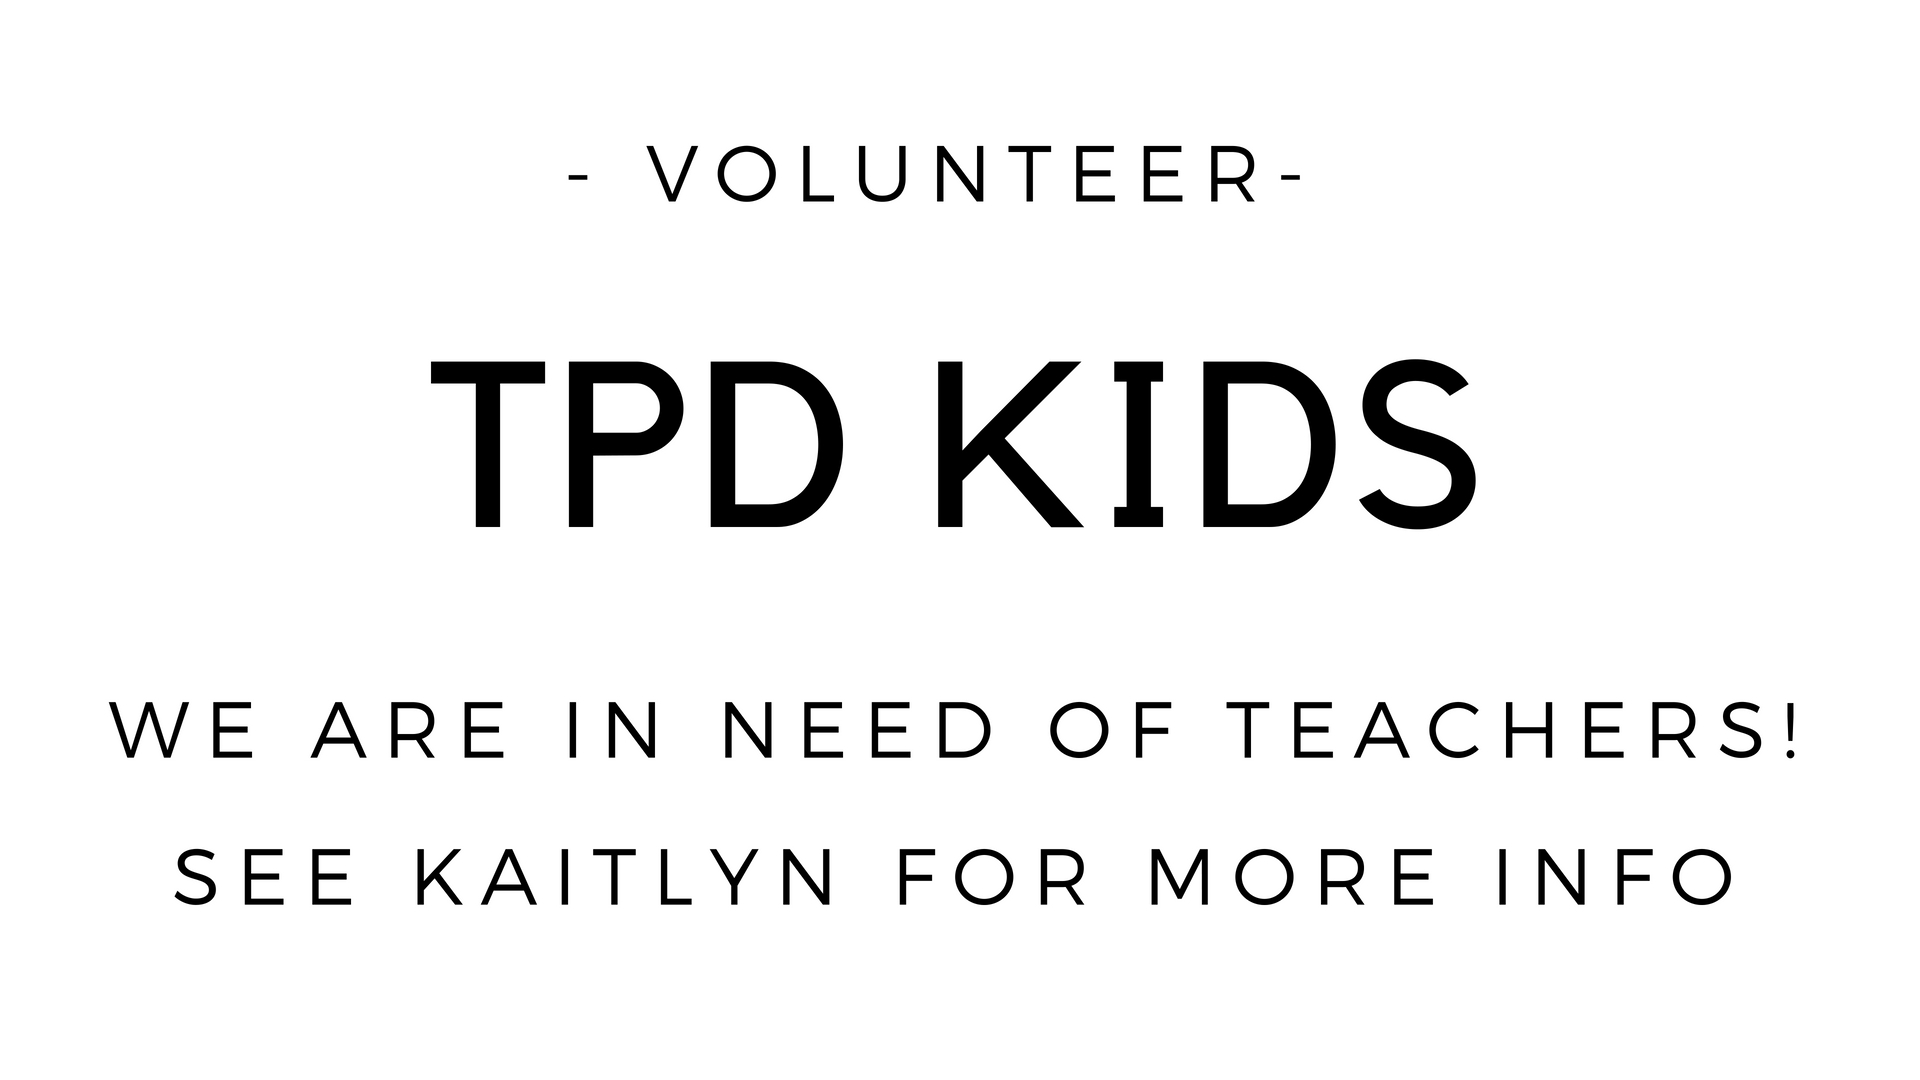 We are in urgent need of a couple more volunteers to teach our children on Sundays. If you are interested, please get in contact with Kaitlyn or Erin.